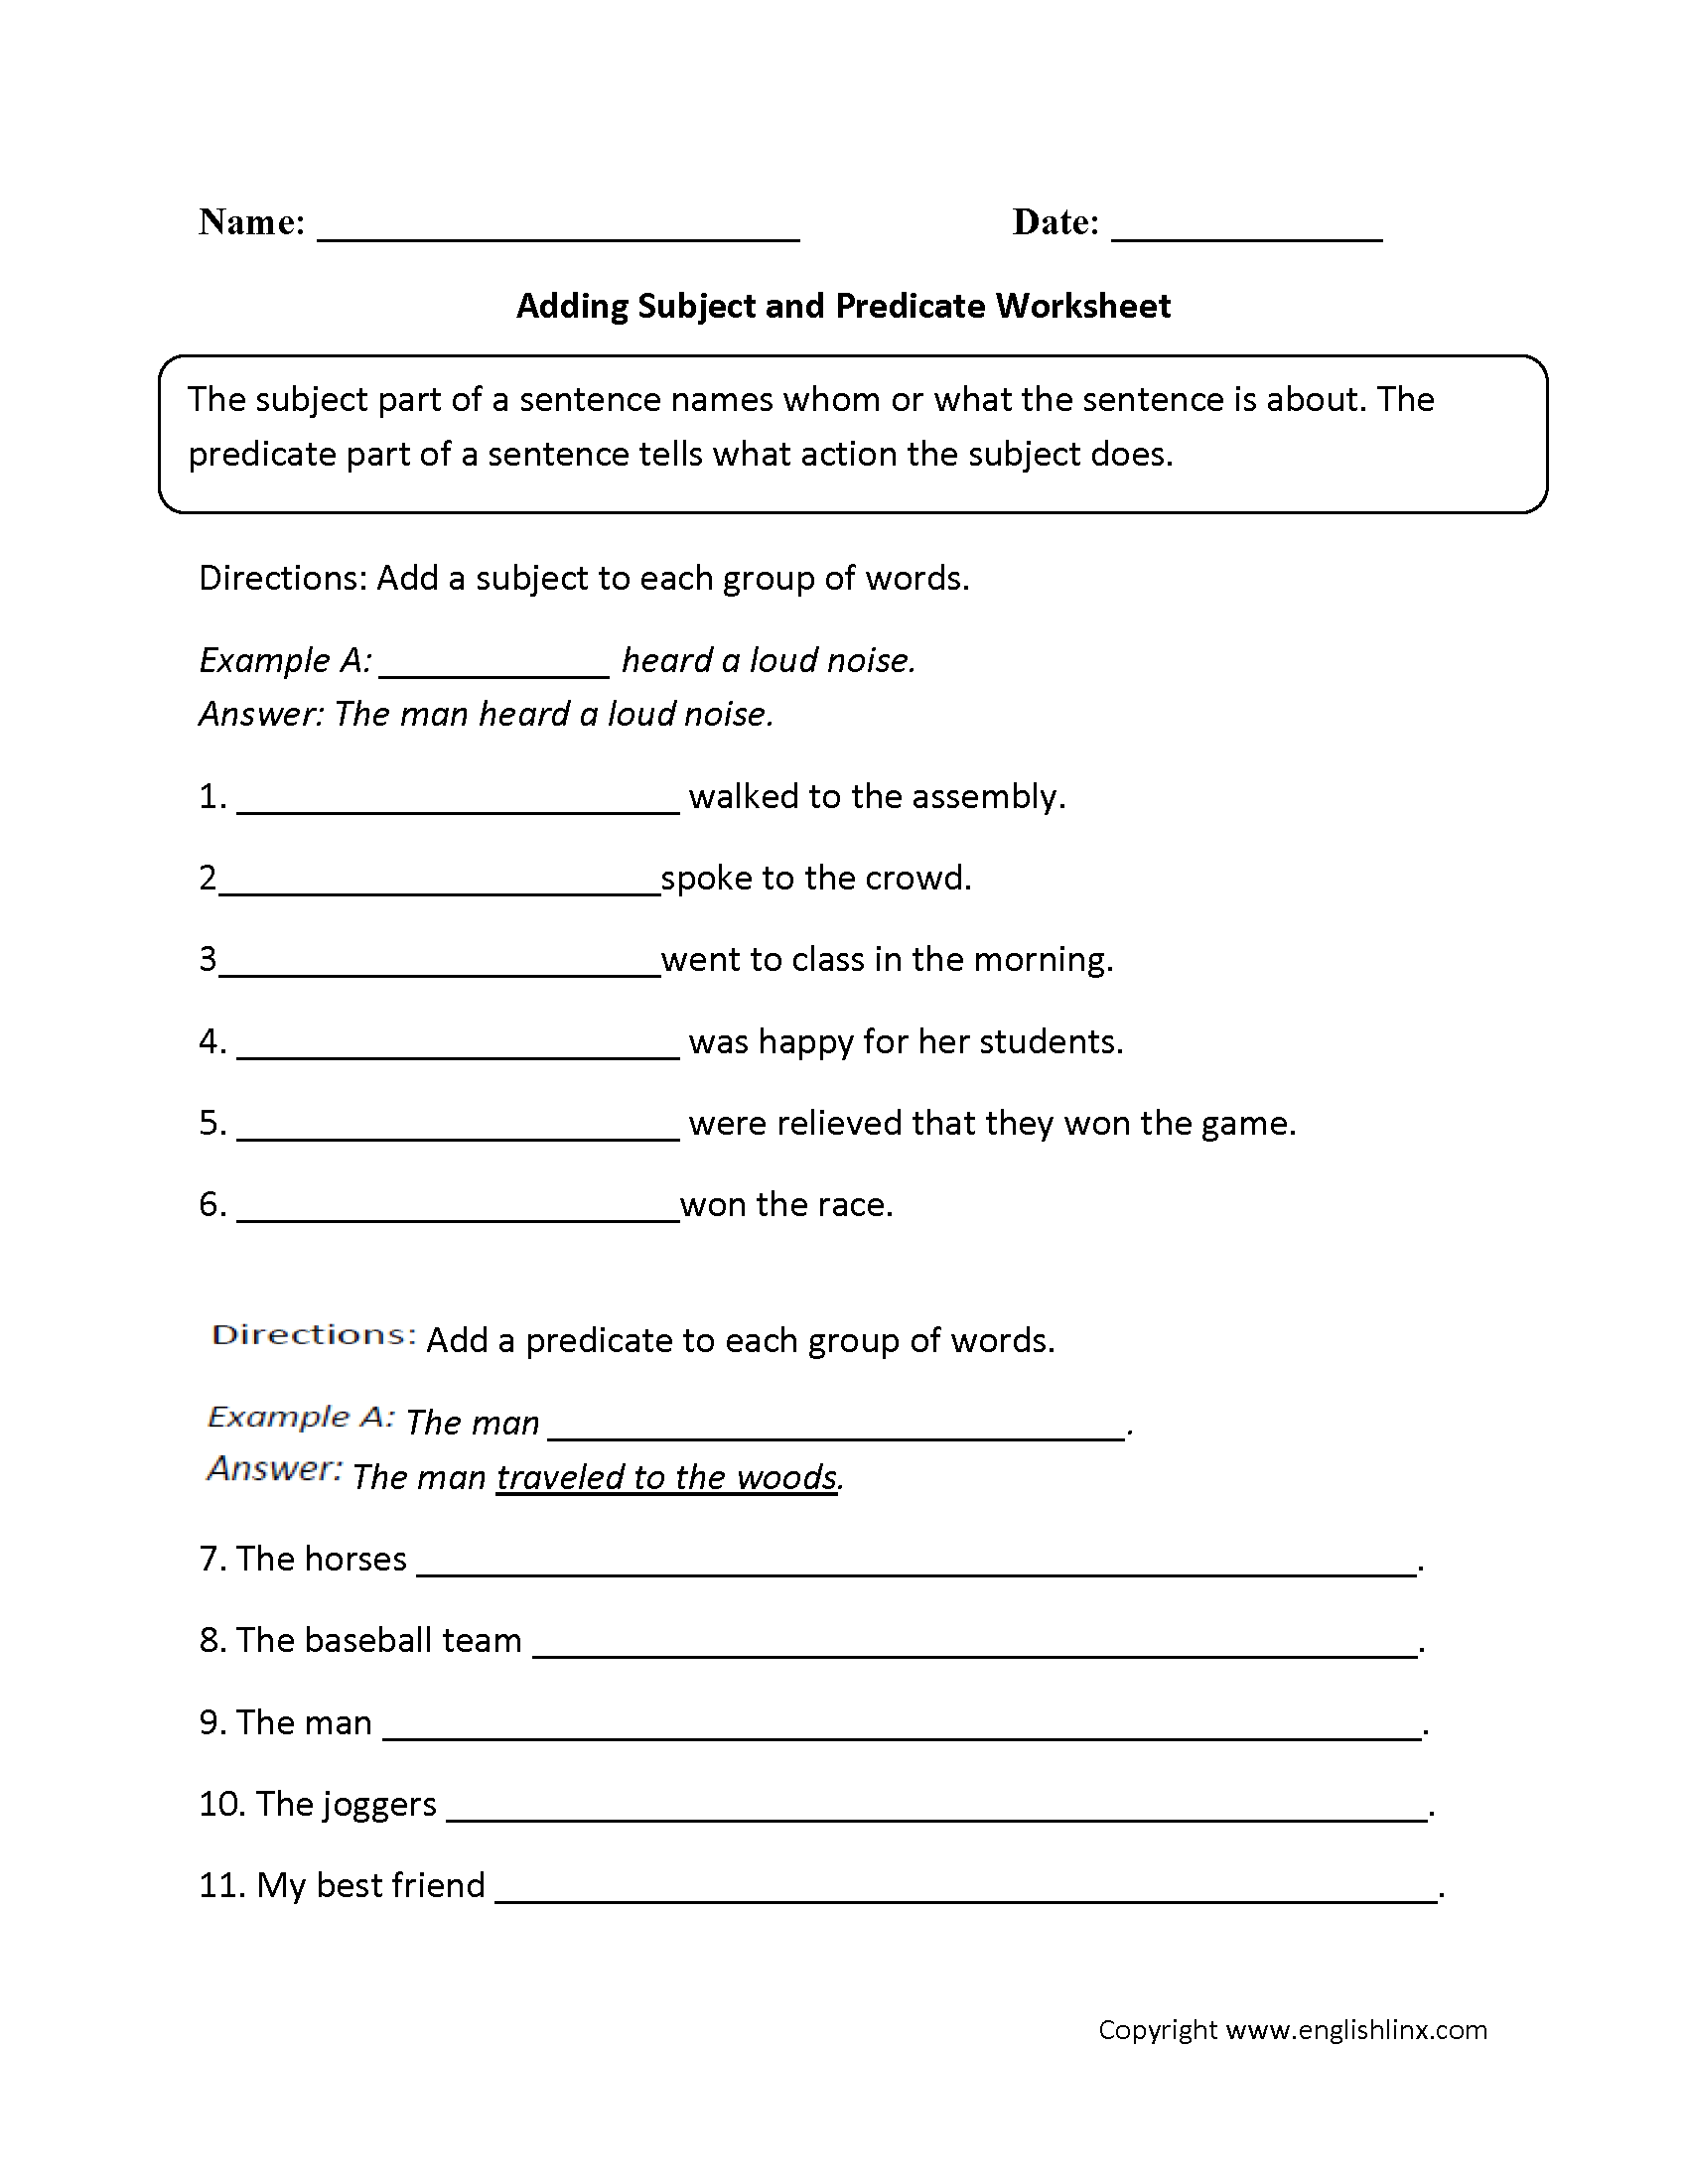 Worksheets 6th Grade English Worksheets parts of a sentence worksheets subject and predicate adding predicateworksheet